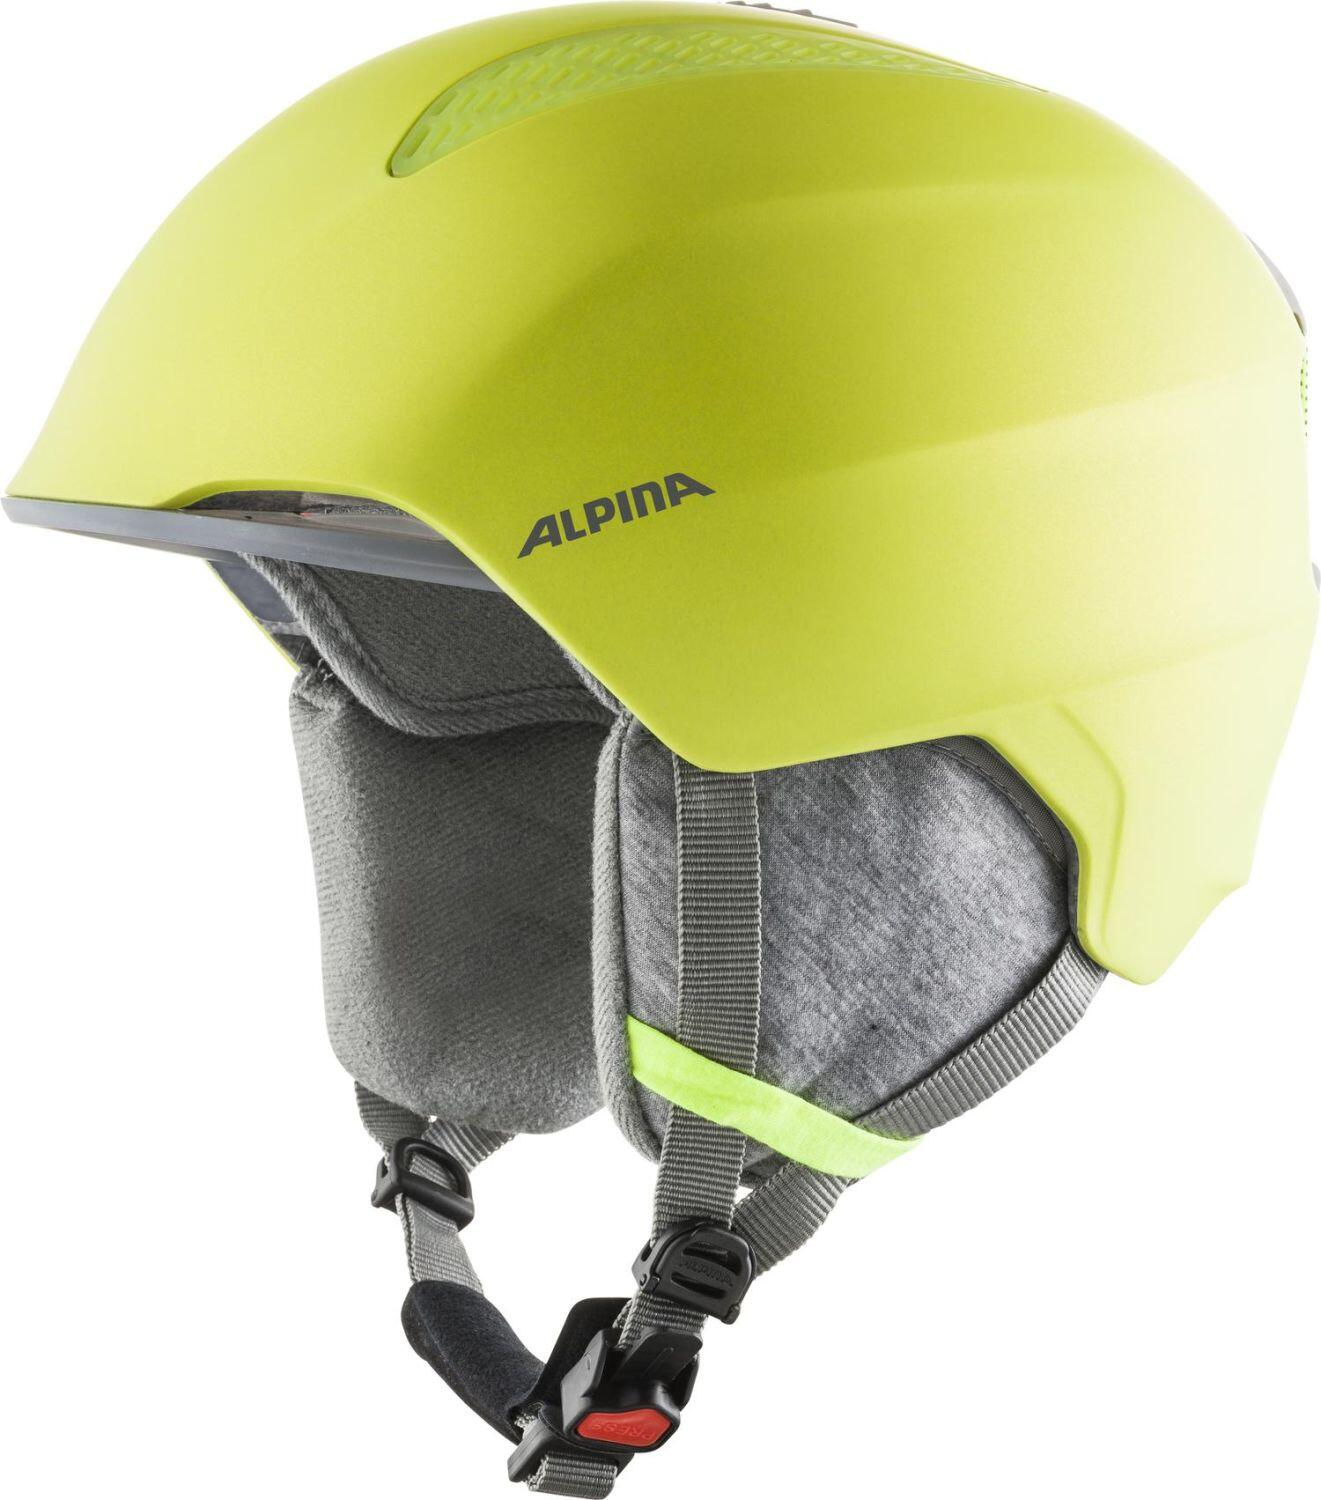 Fürski - Alpina Grand Kinder Skihelm (Größe 51 54 cm, 40 neon yellow) - Onlineshop